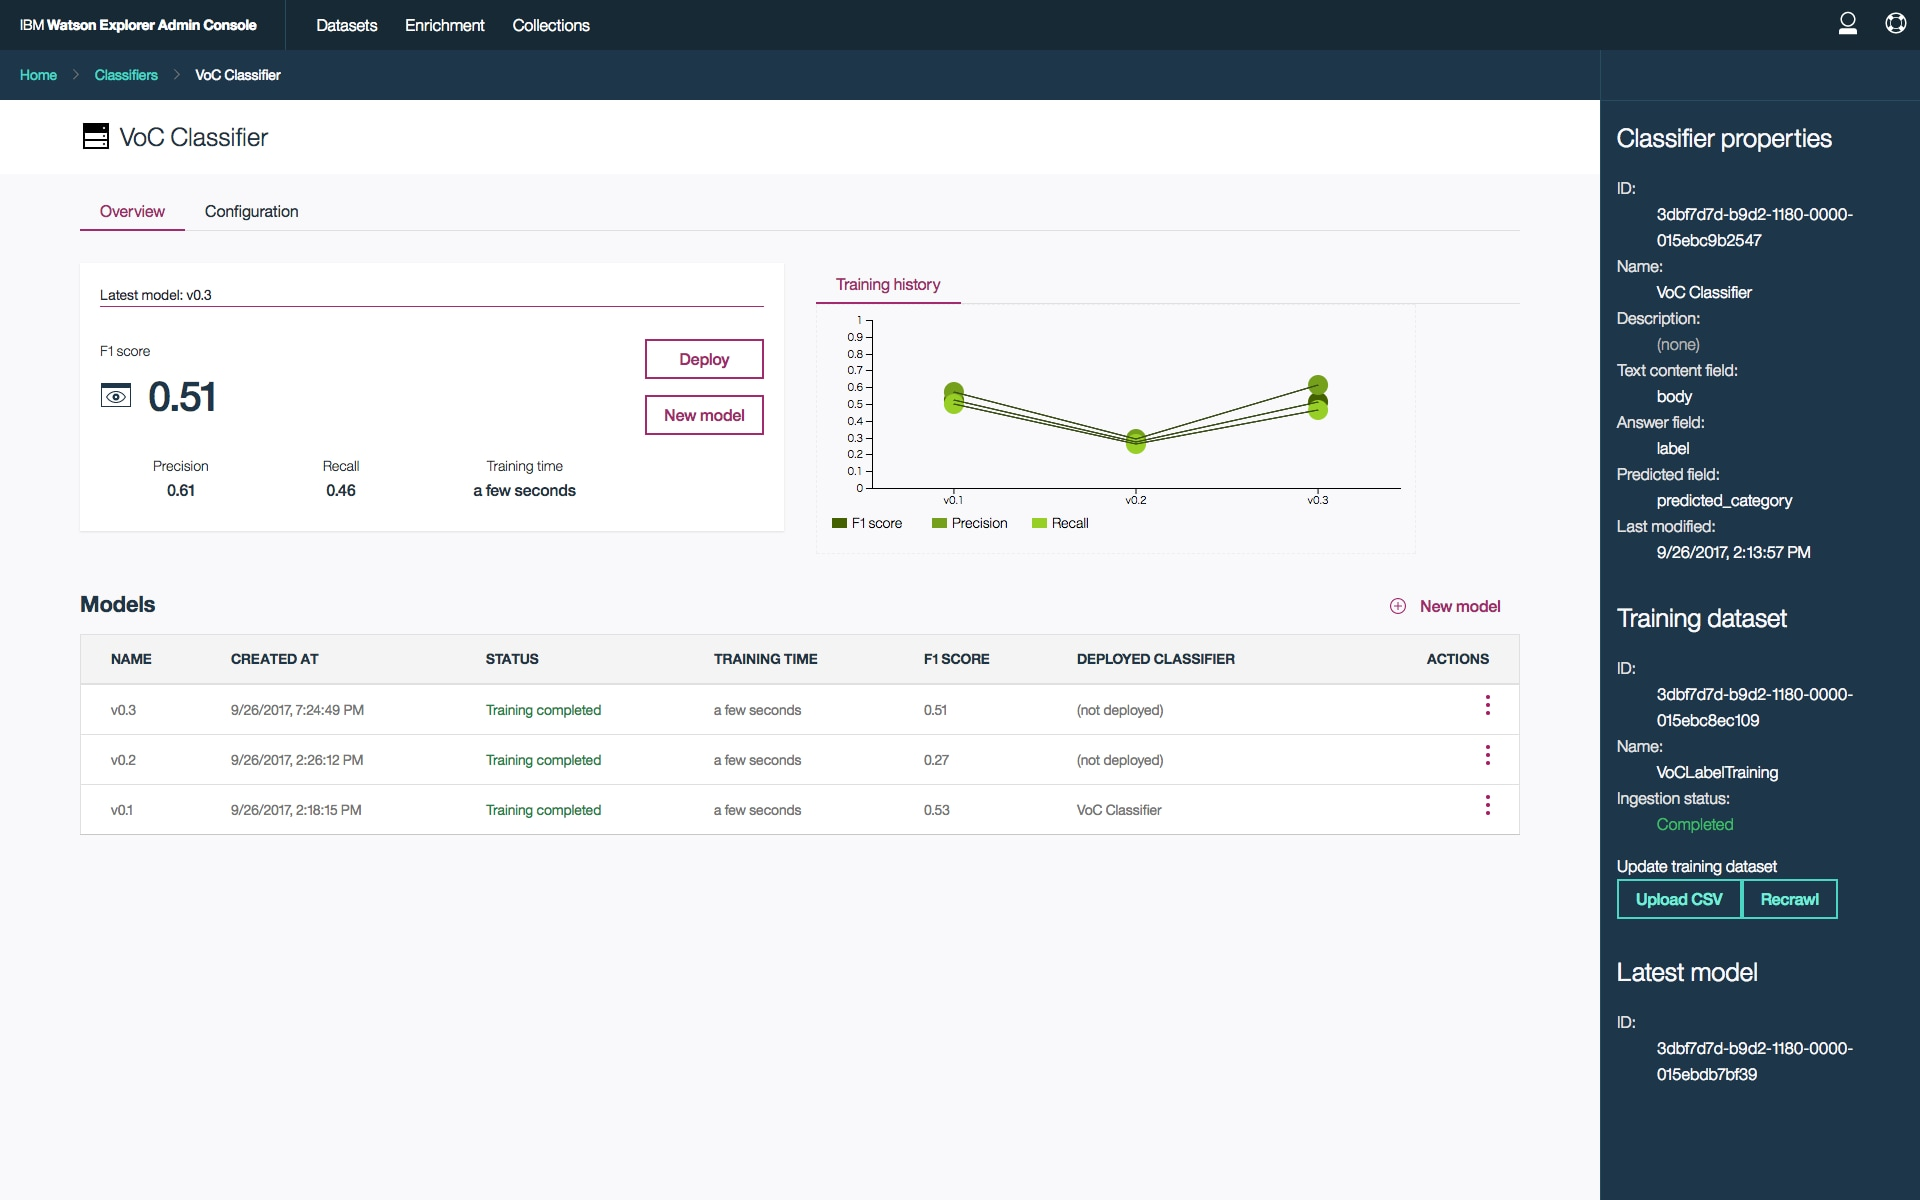 Screen capture of the cognitive advisement advice capability of the IBM Watson Explorer product offering